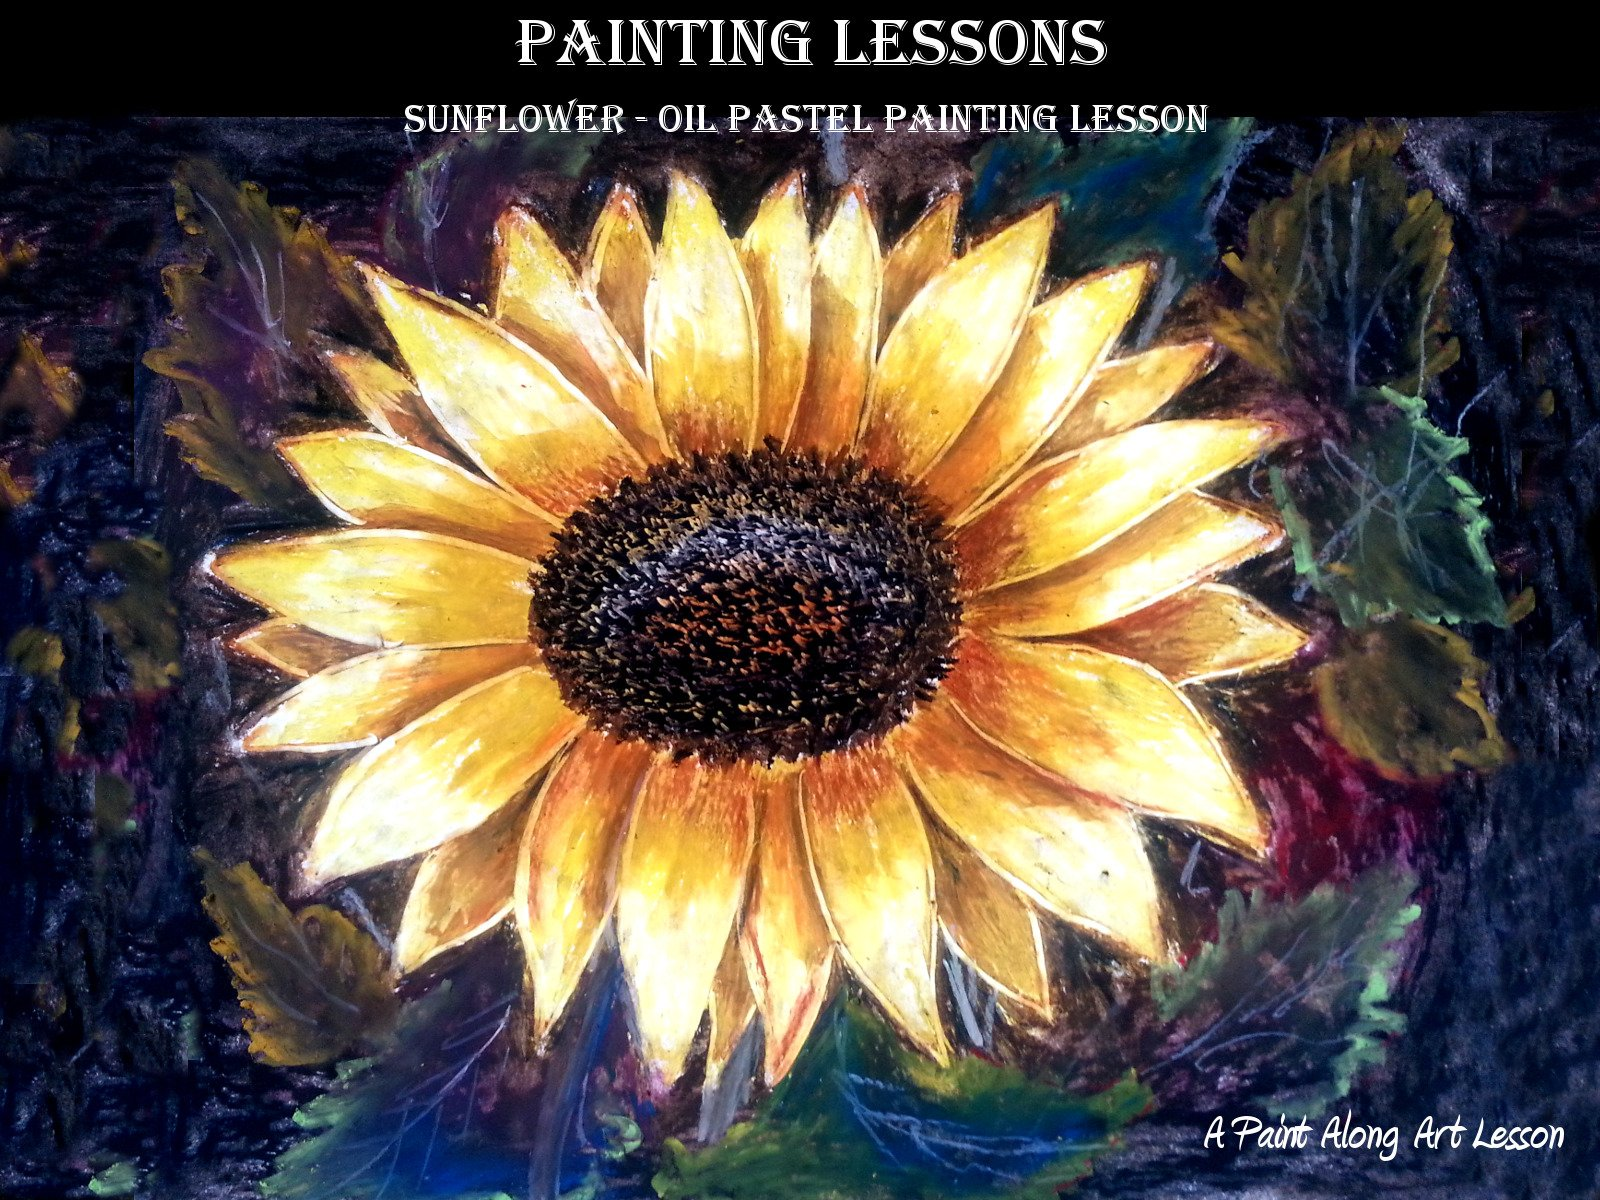 Painting Lessons - Season 2